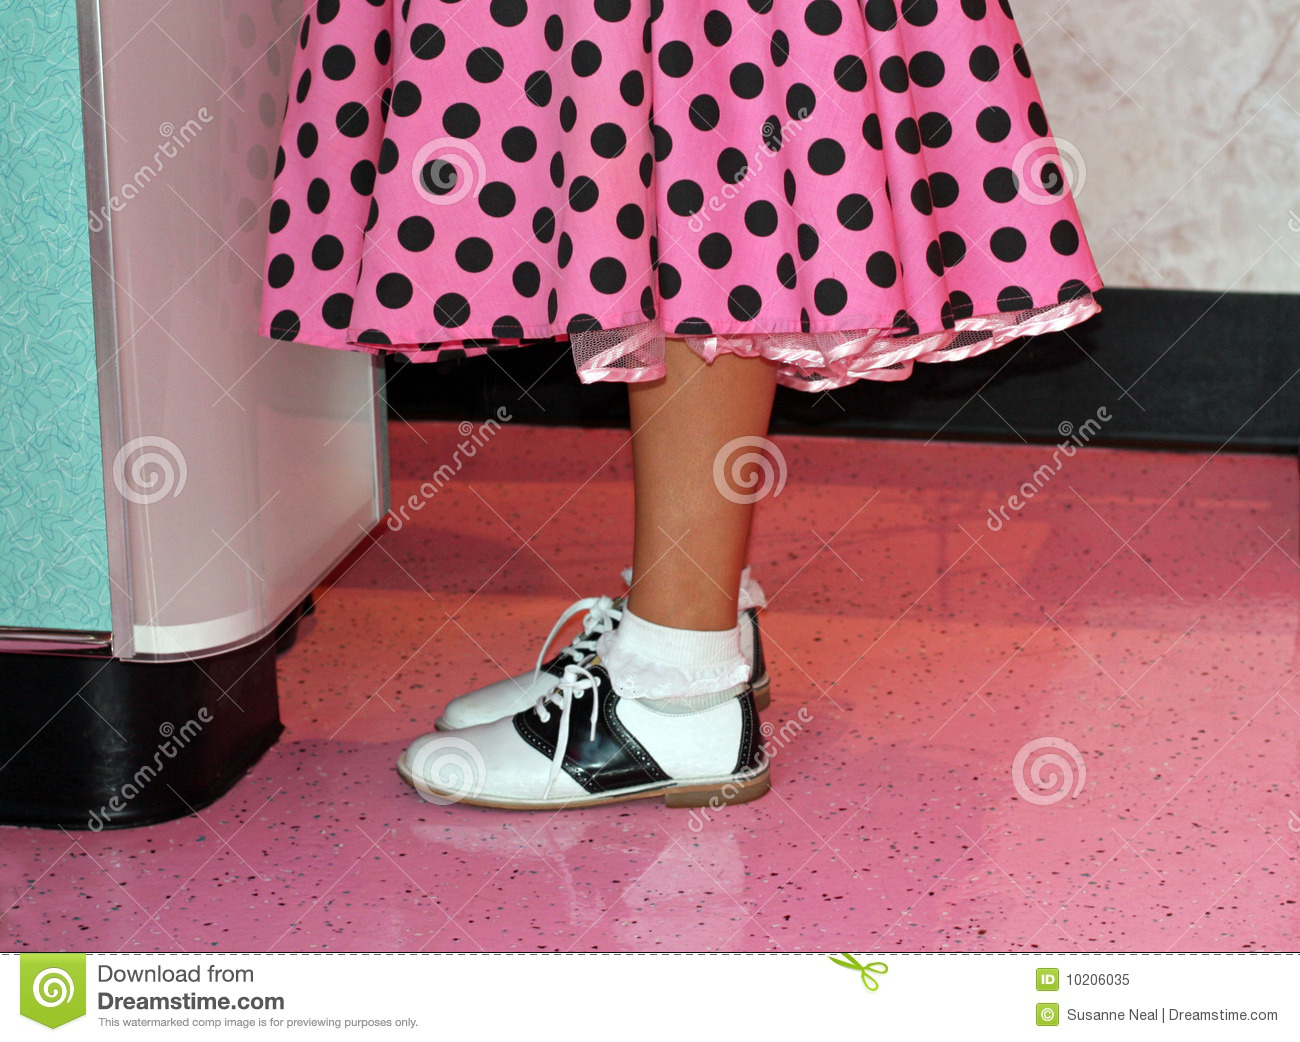 Black and white saddle shoes complete this 1950 s era teen outfit